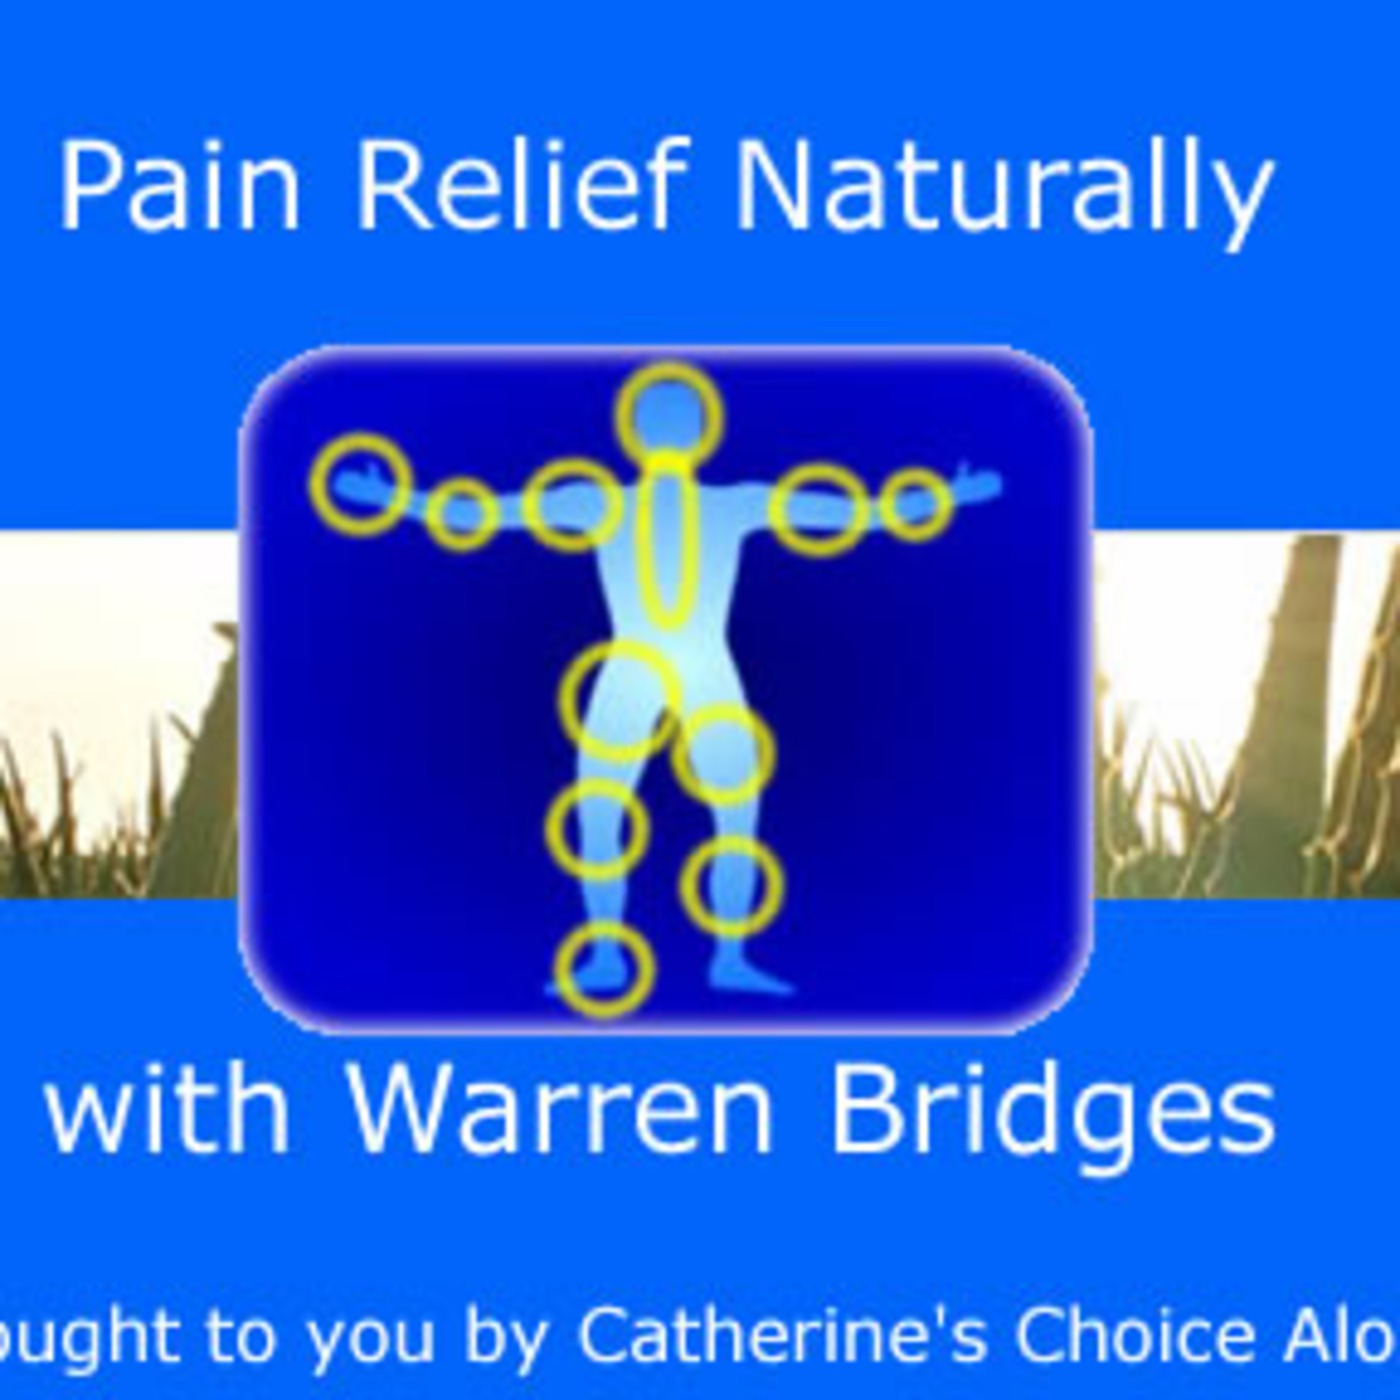 Pain Relief Naturally Logo